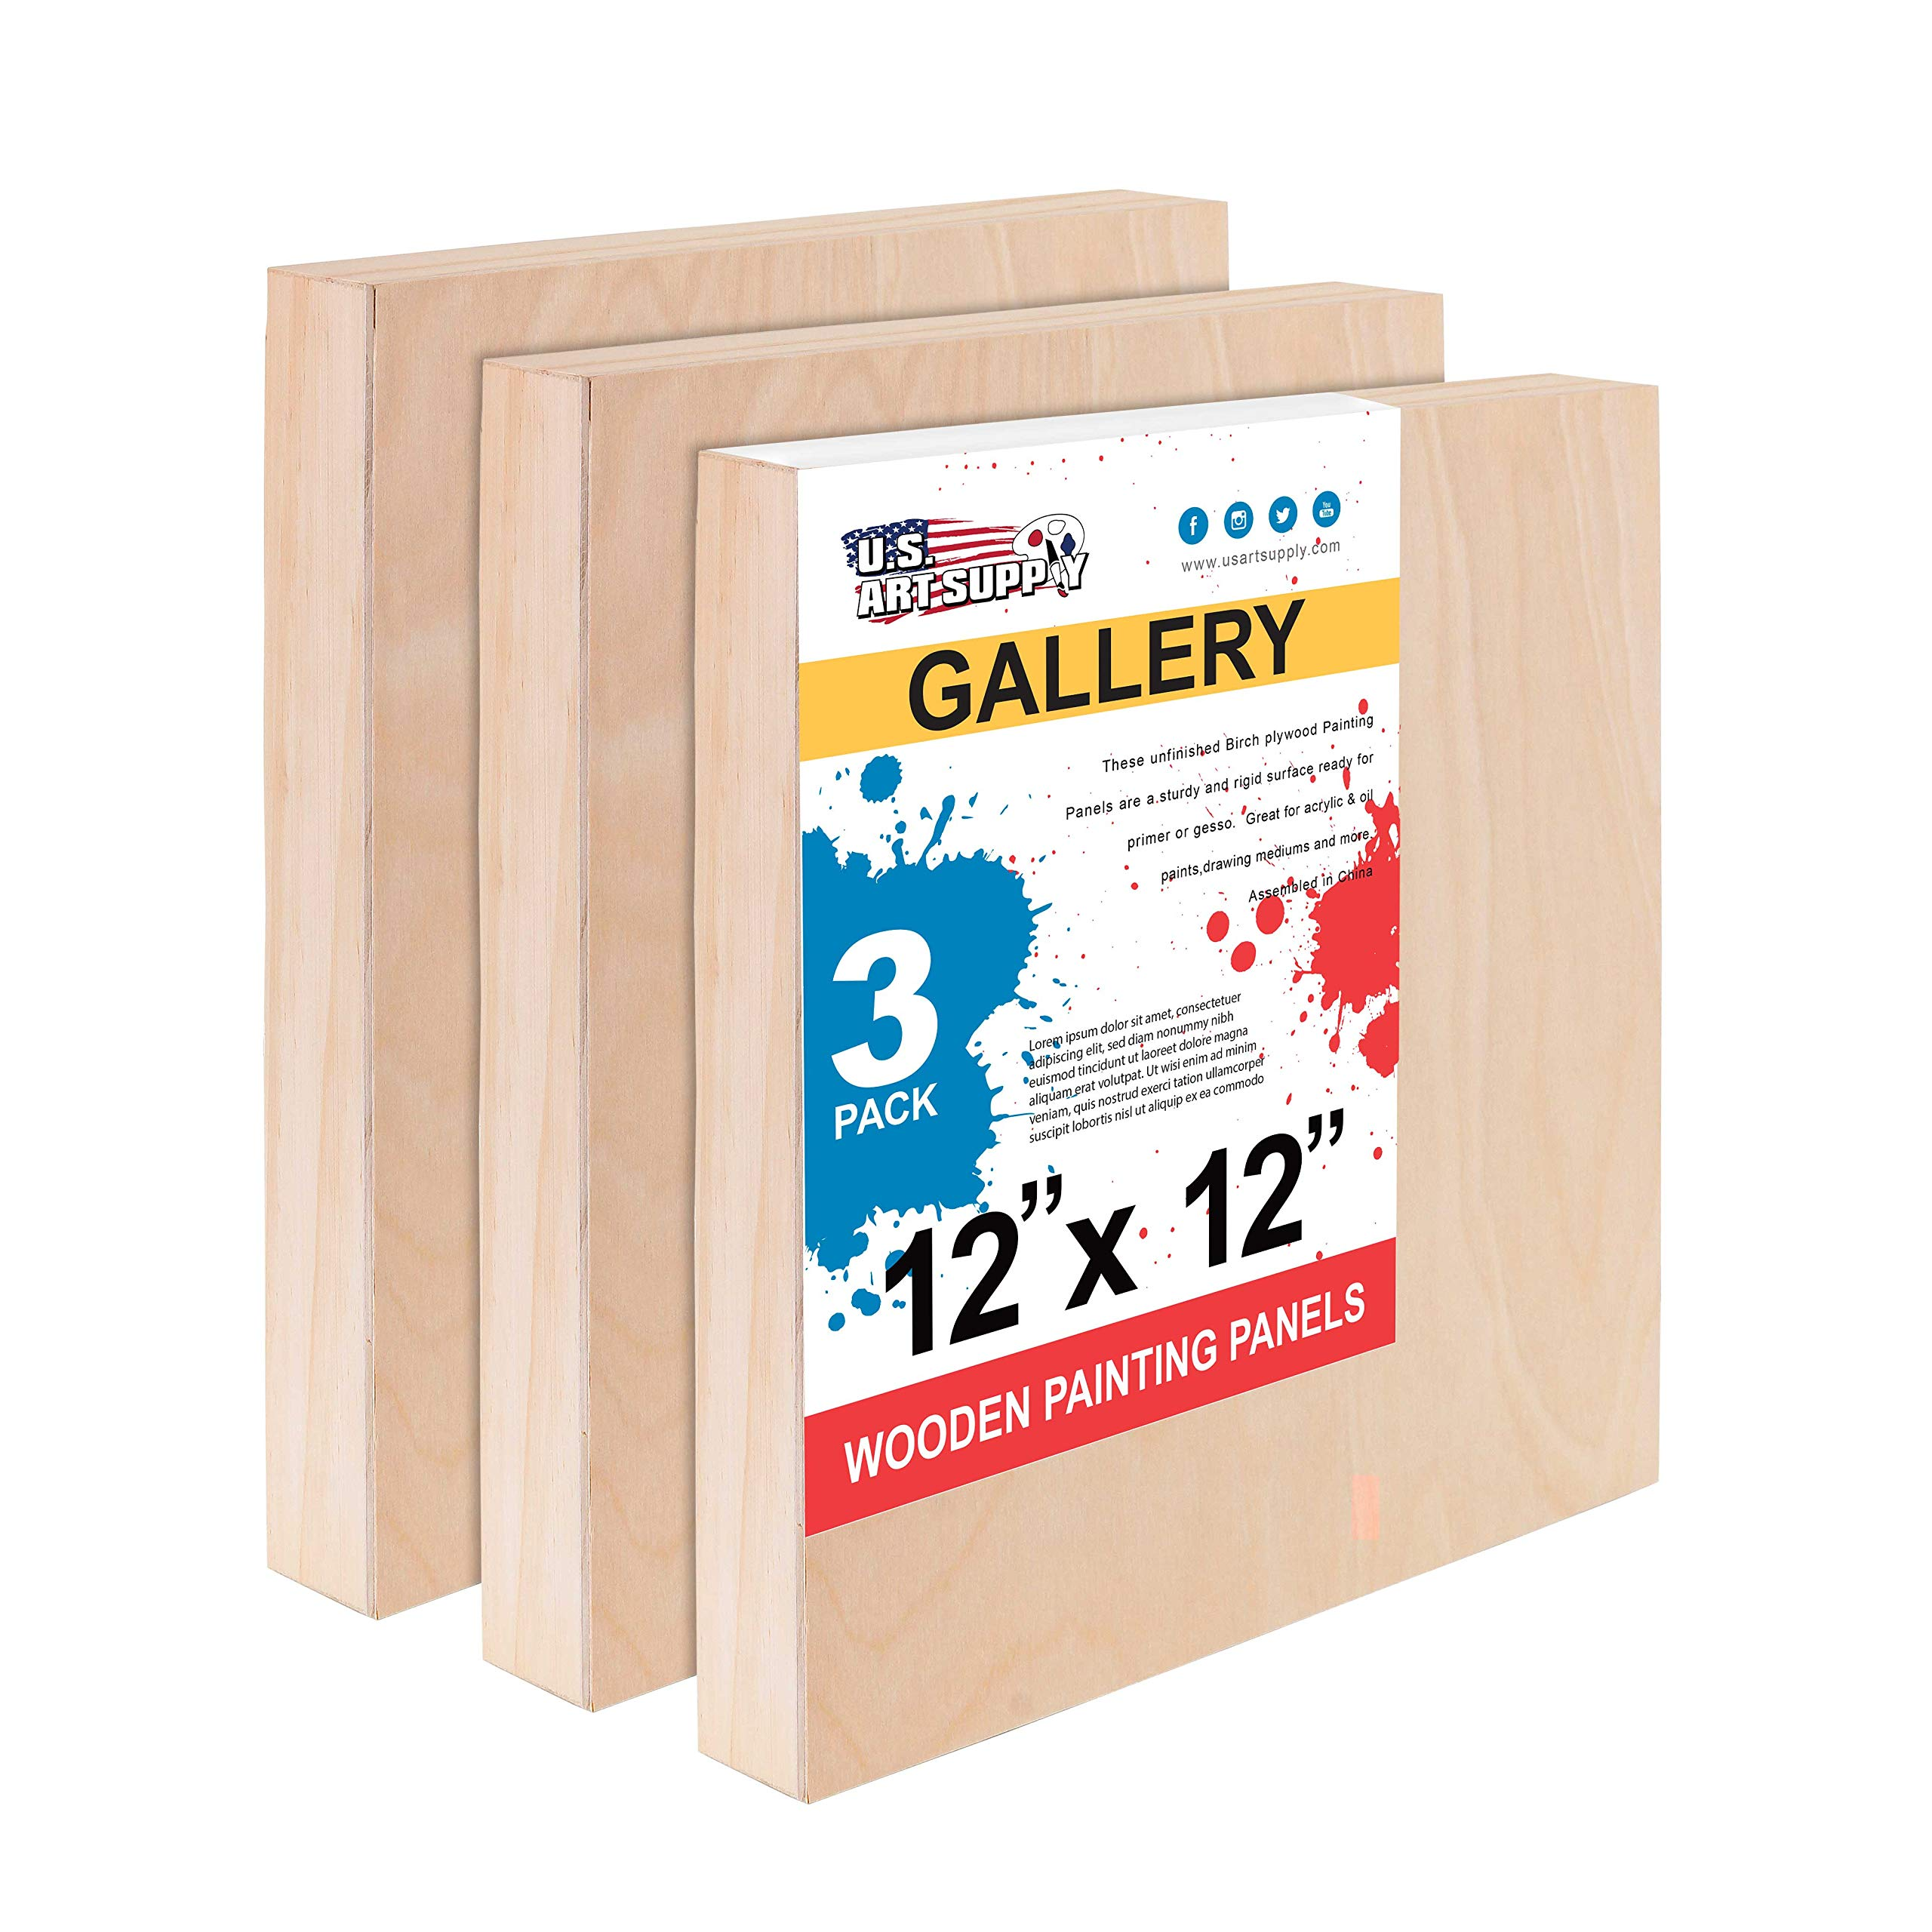 U.S. Art Supply 12'' x 12'' Birch Wood Paint Pouring Panel Boards, Gallery 1-1/2'' Deep Cradle (Pack of 3) - Artist Depth Wooden Wall Canvases - Painting Mixed-Media Craft, Acrylic, Oil, Encaustic by U.S. Art Supply